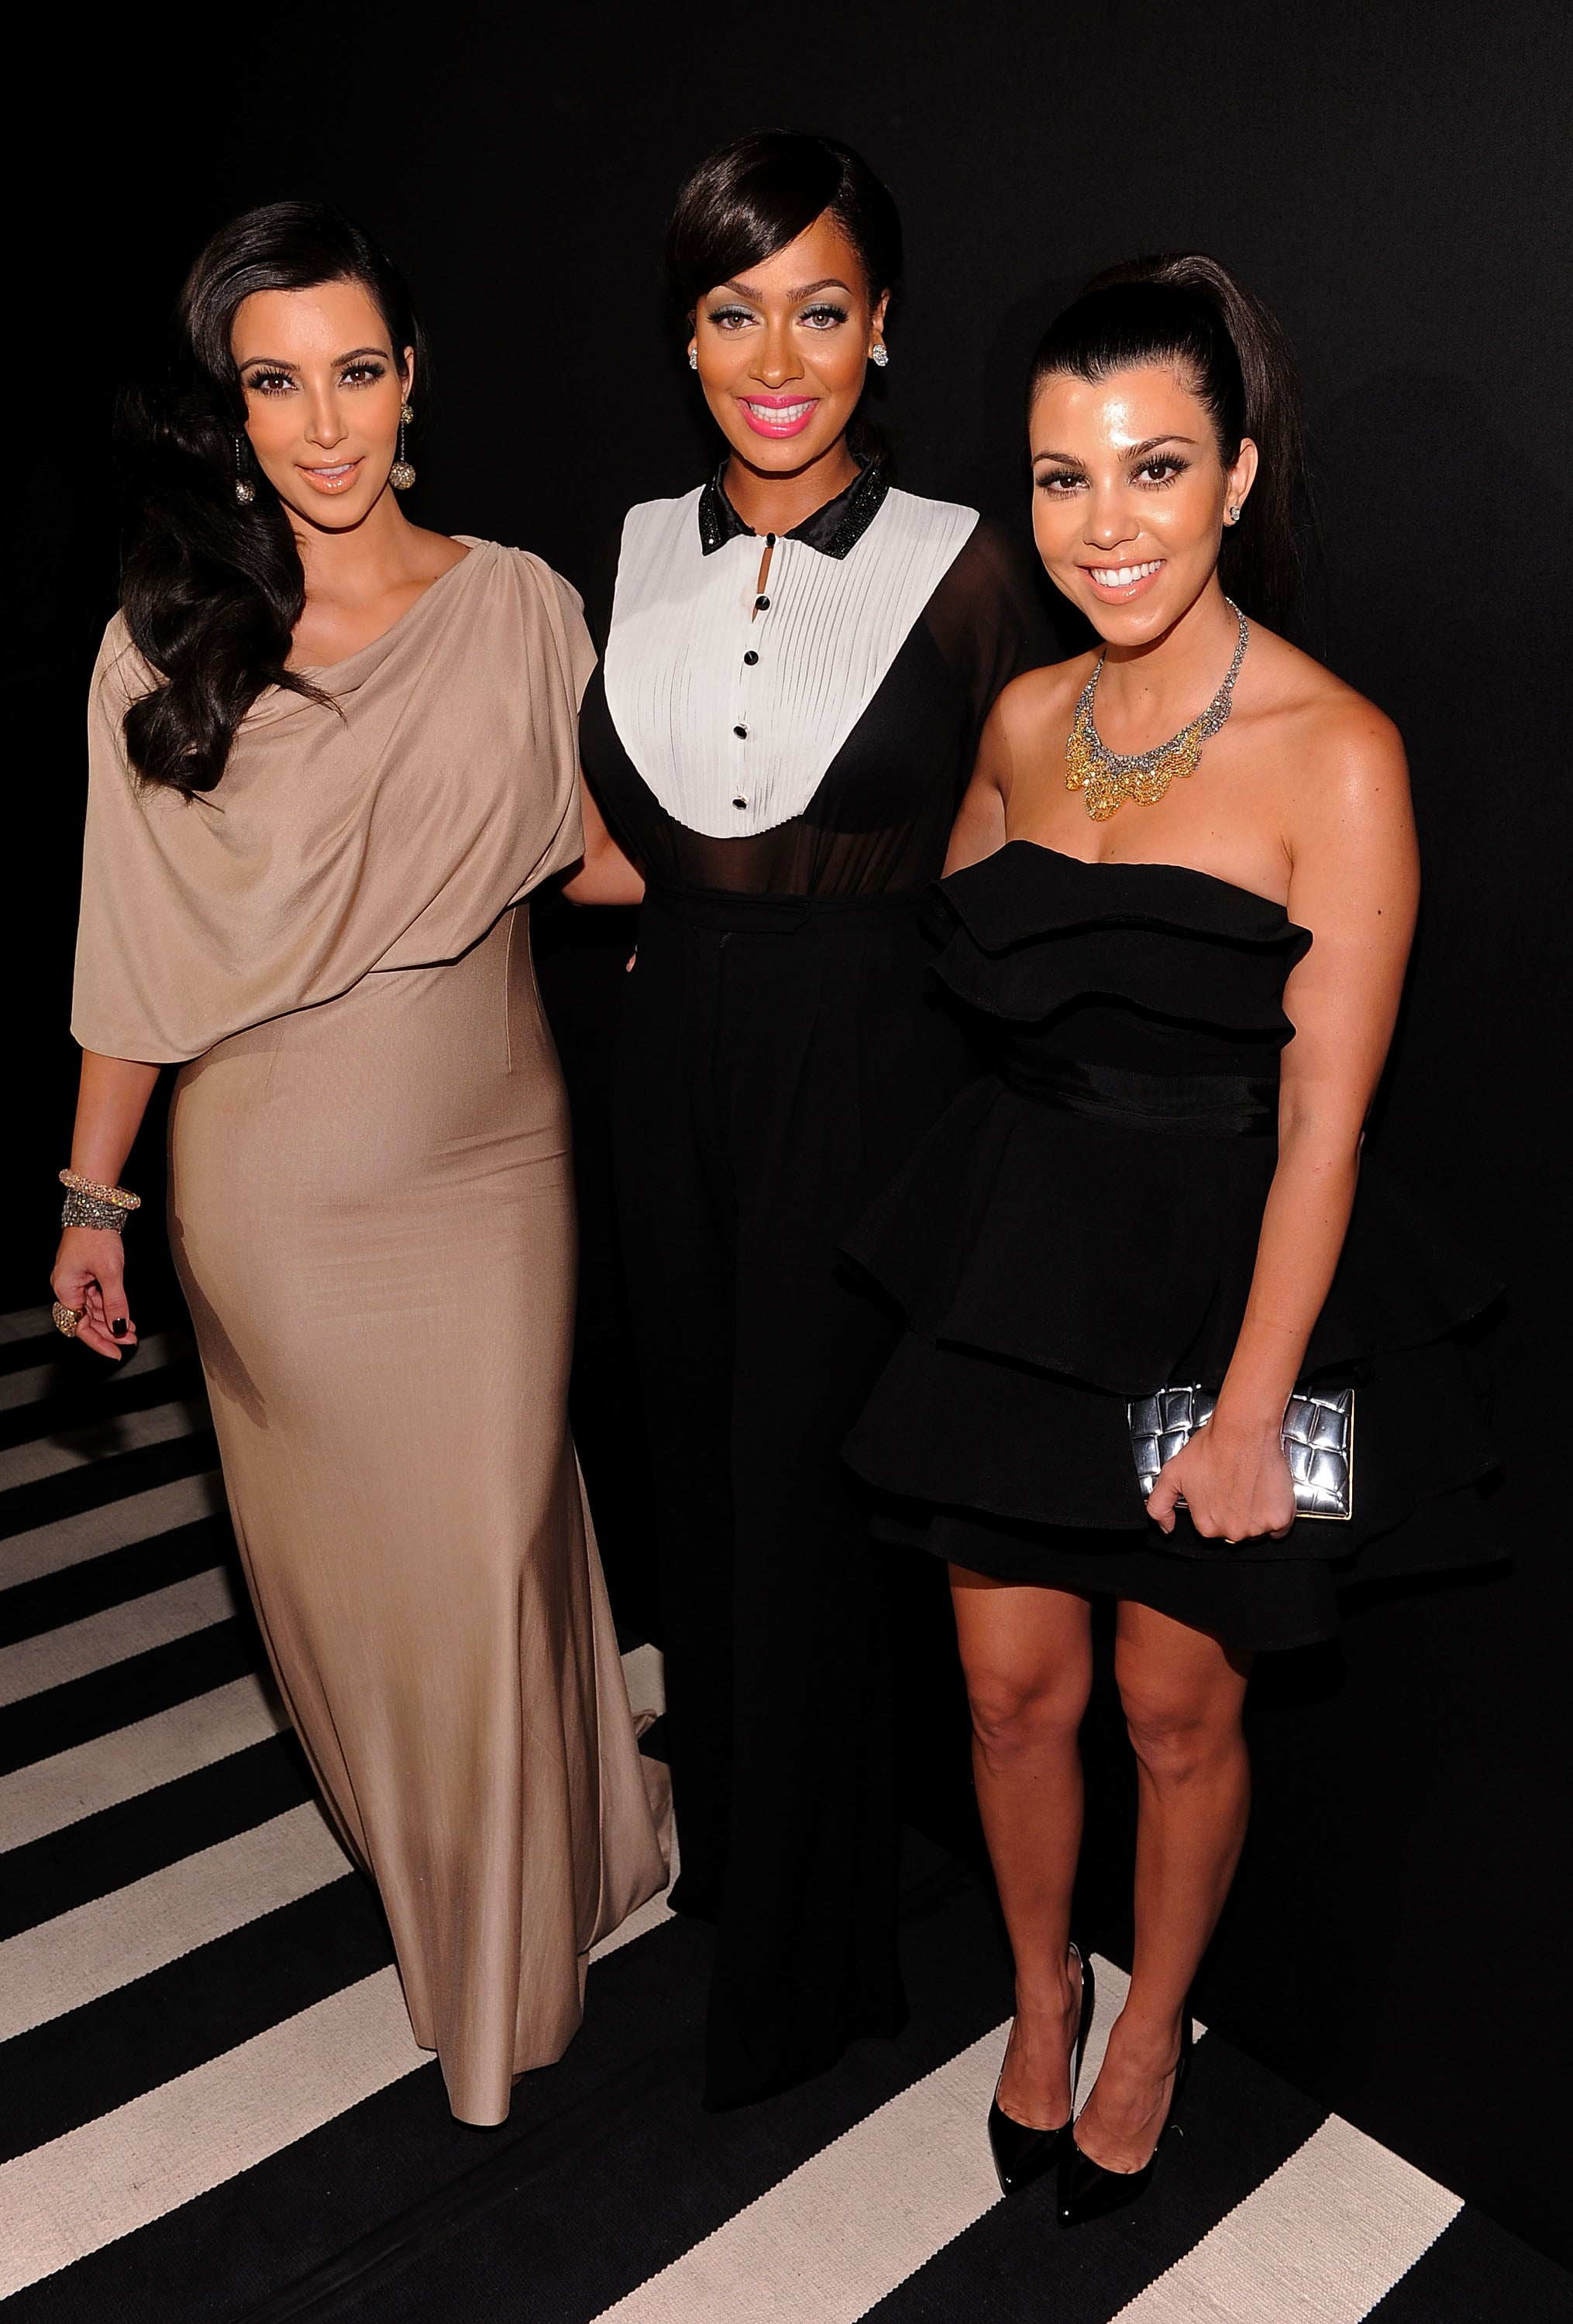 Kim Kardashian, Lia La Anthony and Kourtney Kardashian